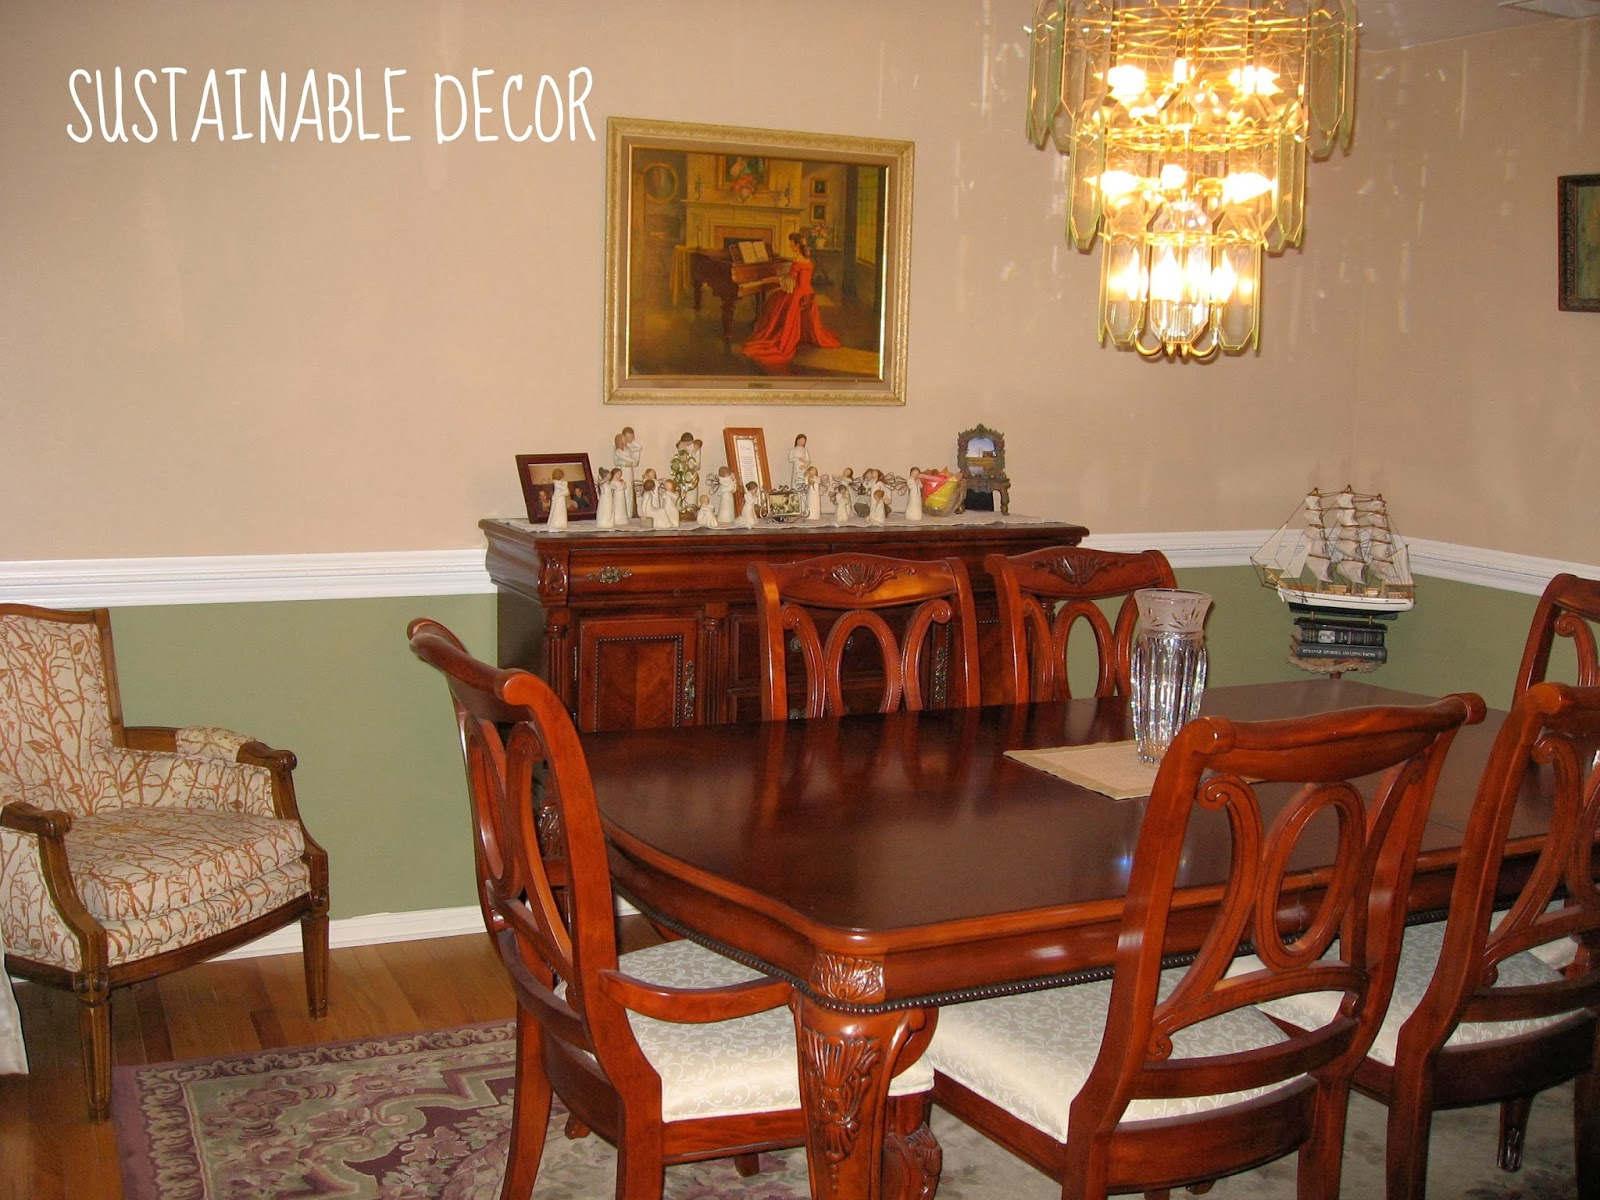 Sustainable Decor My Thrifted Dining Room